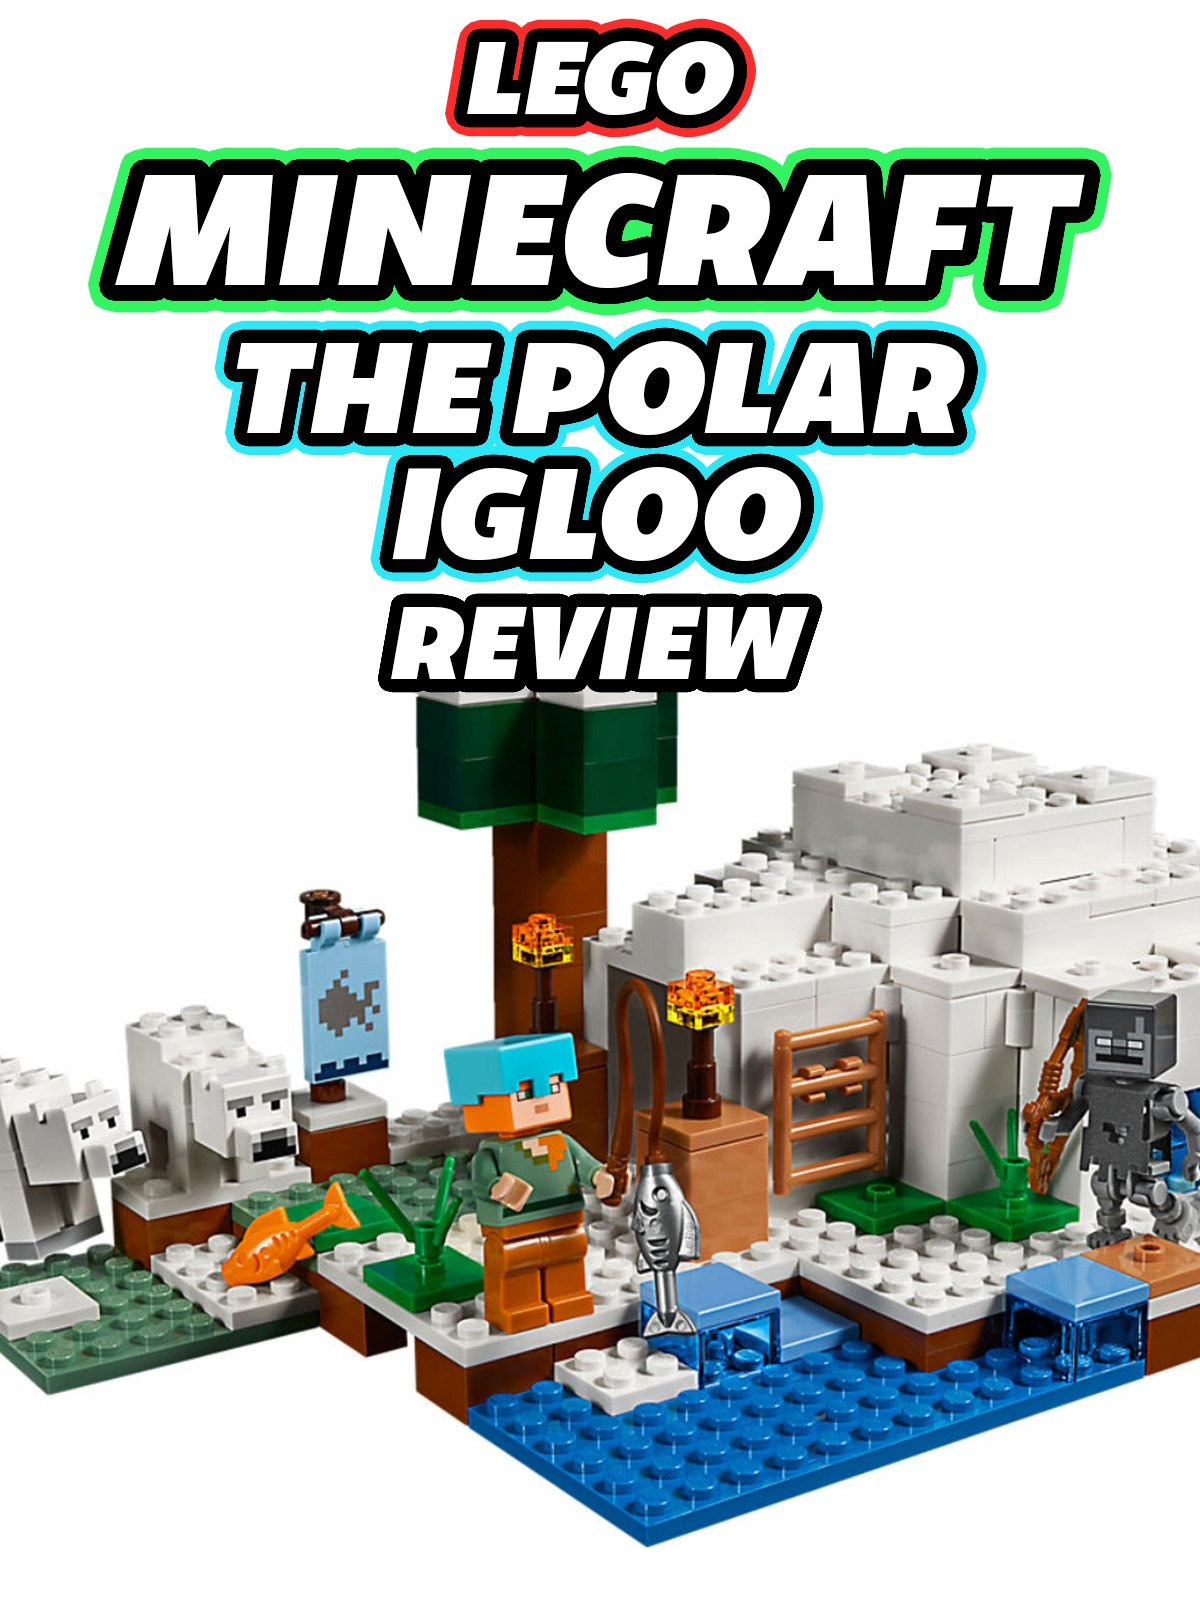 Clip: Lego Minecraft The Polar Igloo Review